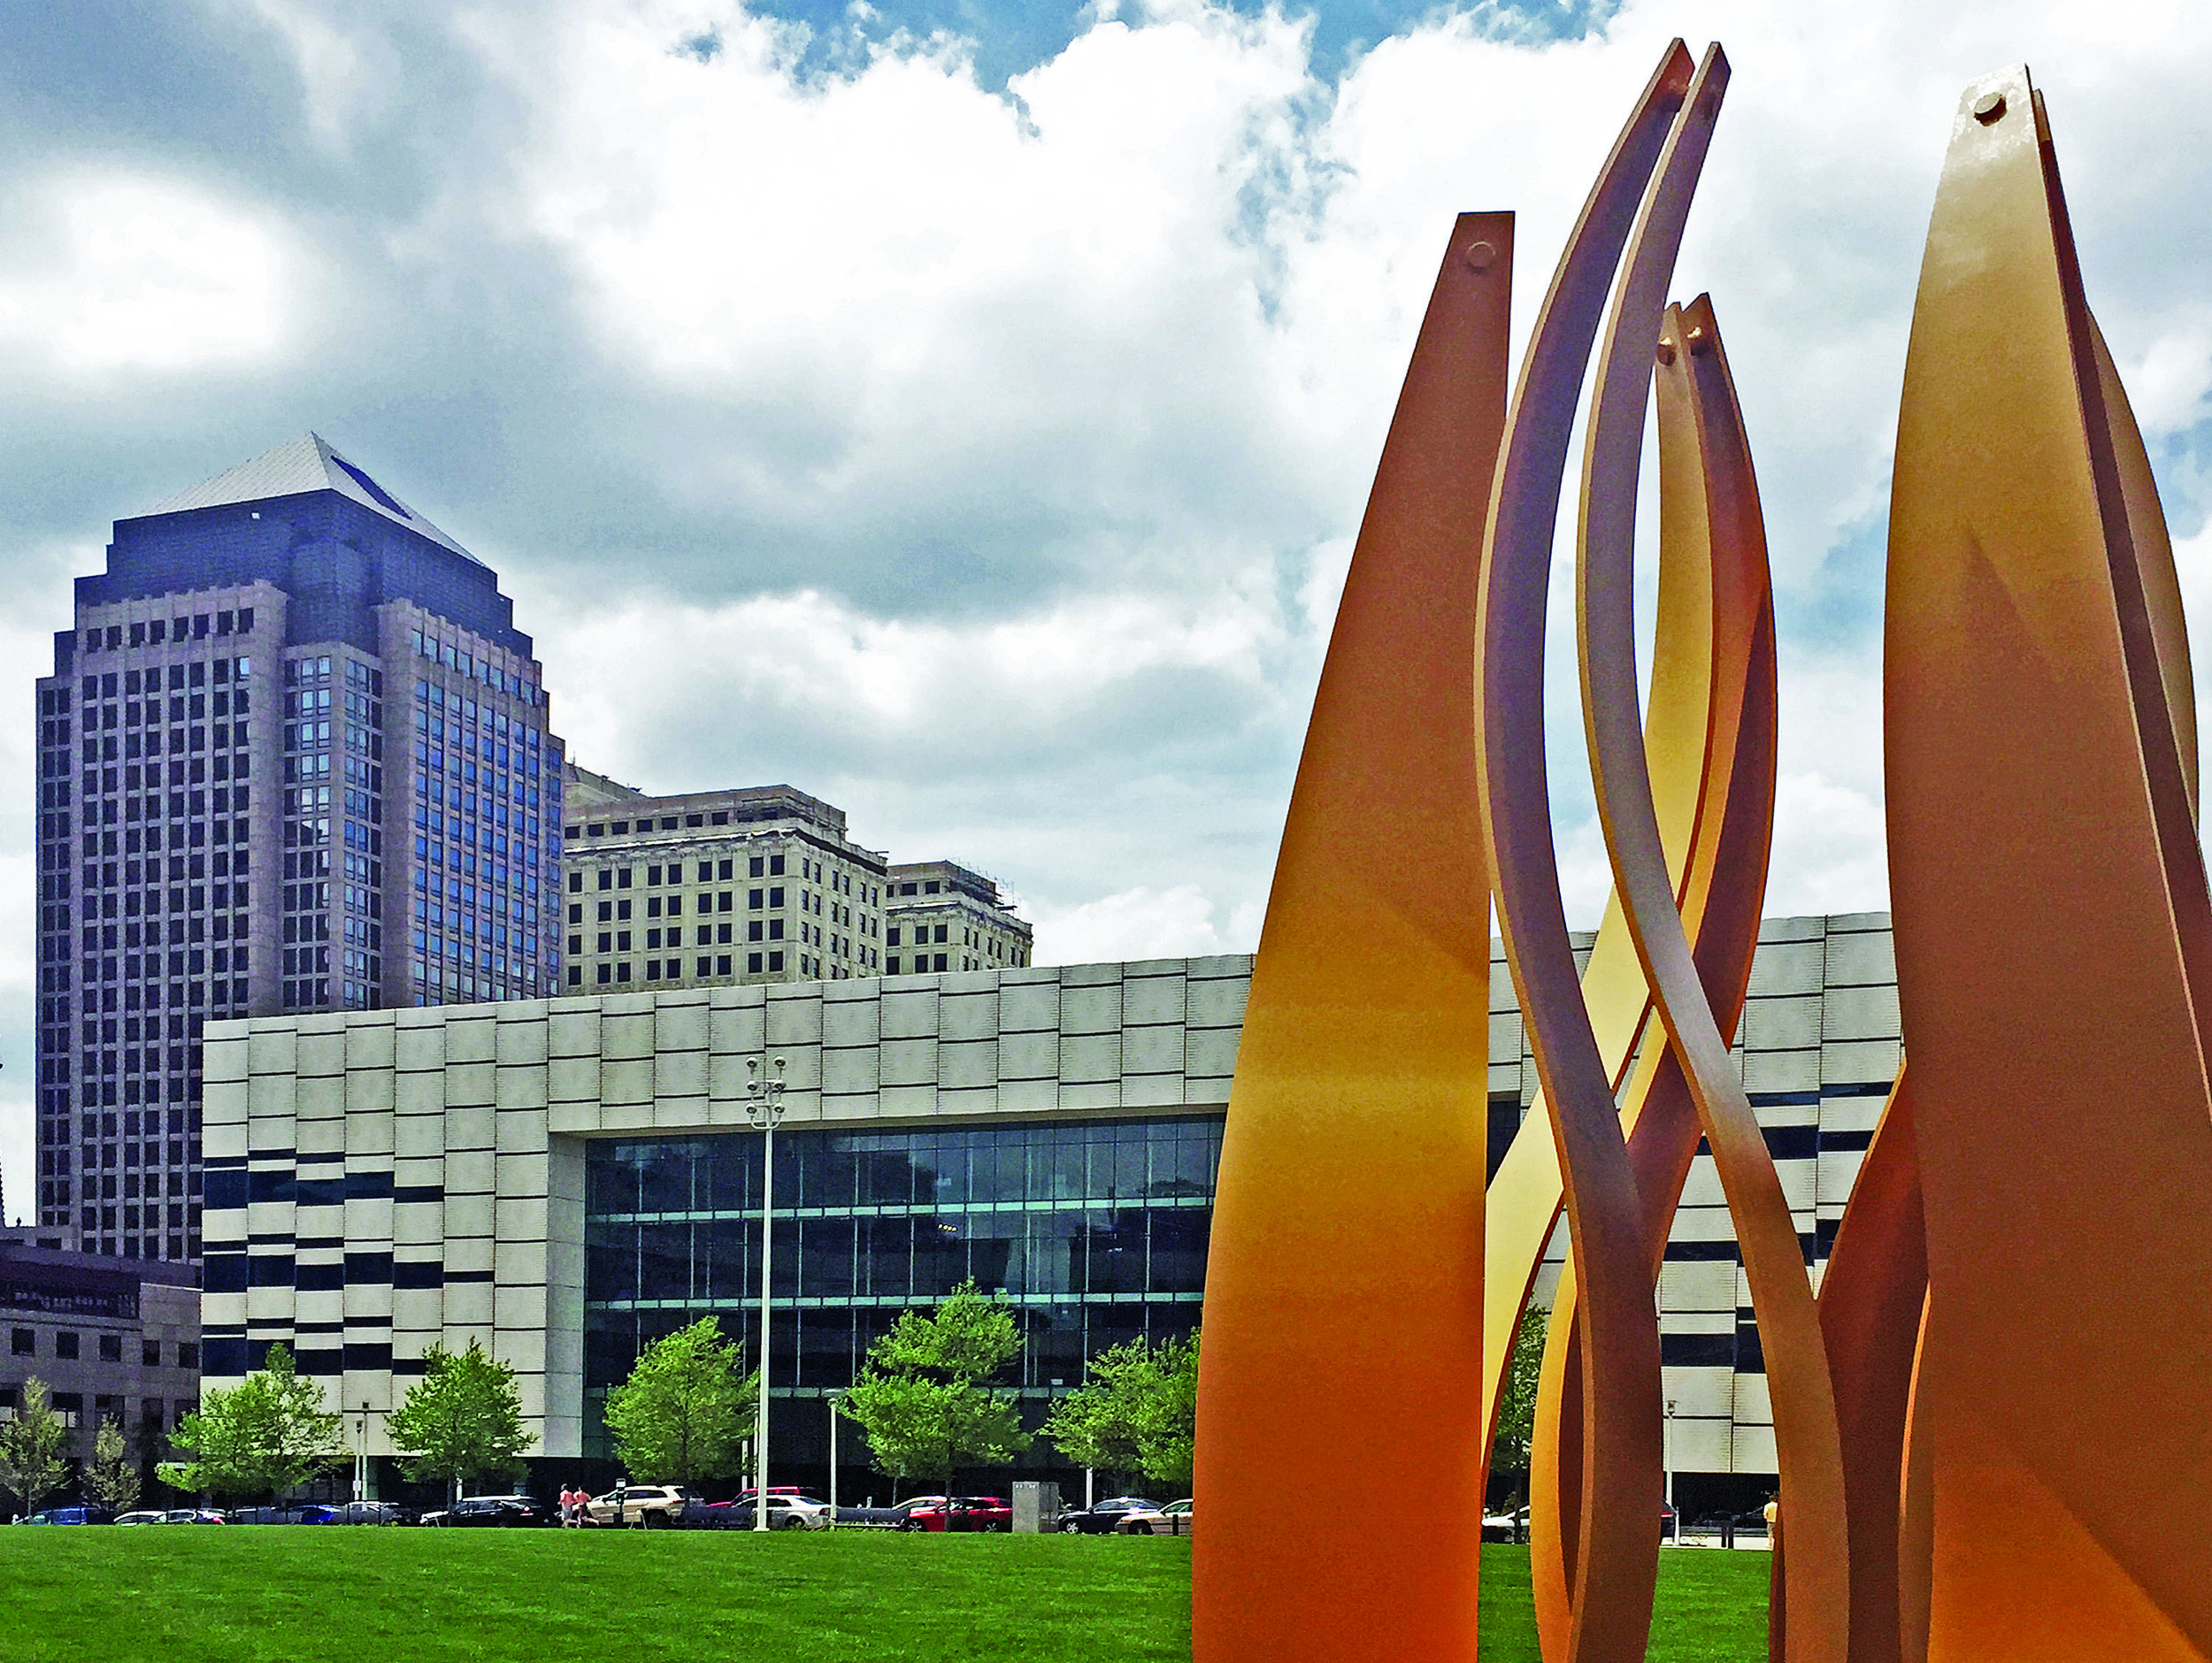 """A Pittsburgh-based online health care communications company is opening a Cleveland office in the Global Center for Health Innovation.   MedRespond , which  won first place at the inaugural Medical Capital Innovation Competition in April, combines artificial intelligence, search and streaming media to enable health care enterprises to provide personalized, relevant and scalable engagement solutions for their patients, clients and their families, according to a news release.  MedRespond anticipates hiring several employees with its expansion to the Global Center, focusing on expanding its content development resources, according to the release.  """"The reaction from the Cleveland medical community to MedRespond's conversational patient engagement platform has been tremendous,"""" said Virginia Flavin Pribanic, MedRespond's president and CEO, in a prepared statement. """"Our Cleveland office will allow us to focus on the development of multiple client projects and connect with Northeast Ohio's vibrant entrepreneurial community.""""  The Medical Capital Innovation Competition awarded MedRespond $50,000 and access to health care mentors, industry collaborators and customers in Cleveland. Since the grand prize win in April, Pribanic has worked with Matthew Miller, BioEnterprise's vice president of health information technology and services, to lay the foundation for MedRespond in Cleveland.  BioEnterprise recently was named to lead strategy at the Global Center.  """"BioEnterprise is thrilled to welcome MedRespond to Cleveland and to the Global Center for Health Innovation,"""" said Aram Nerpouni, president and CEO of BioEnterprise, in a prepared statement. """"Its presence here will accelerate the company's further growth and development as it gains increased access to Northeast Ohio's asset-rich biomedical and health care industry."""""""